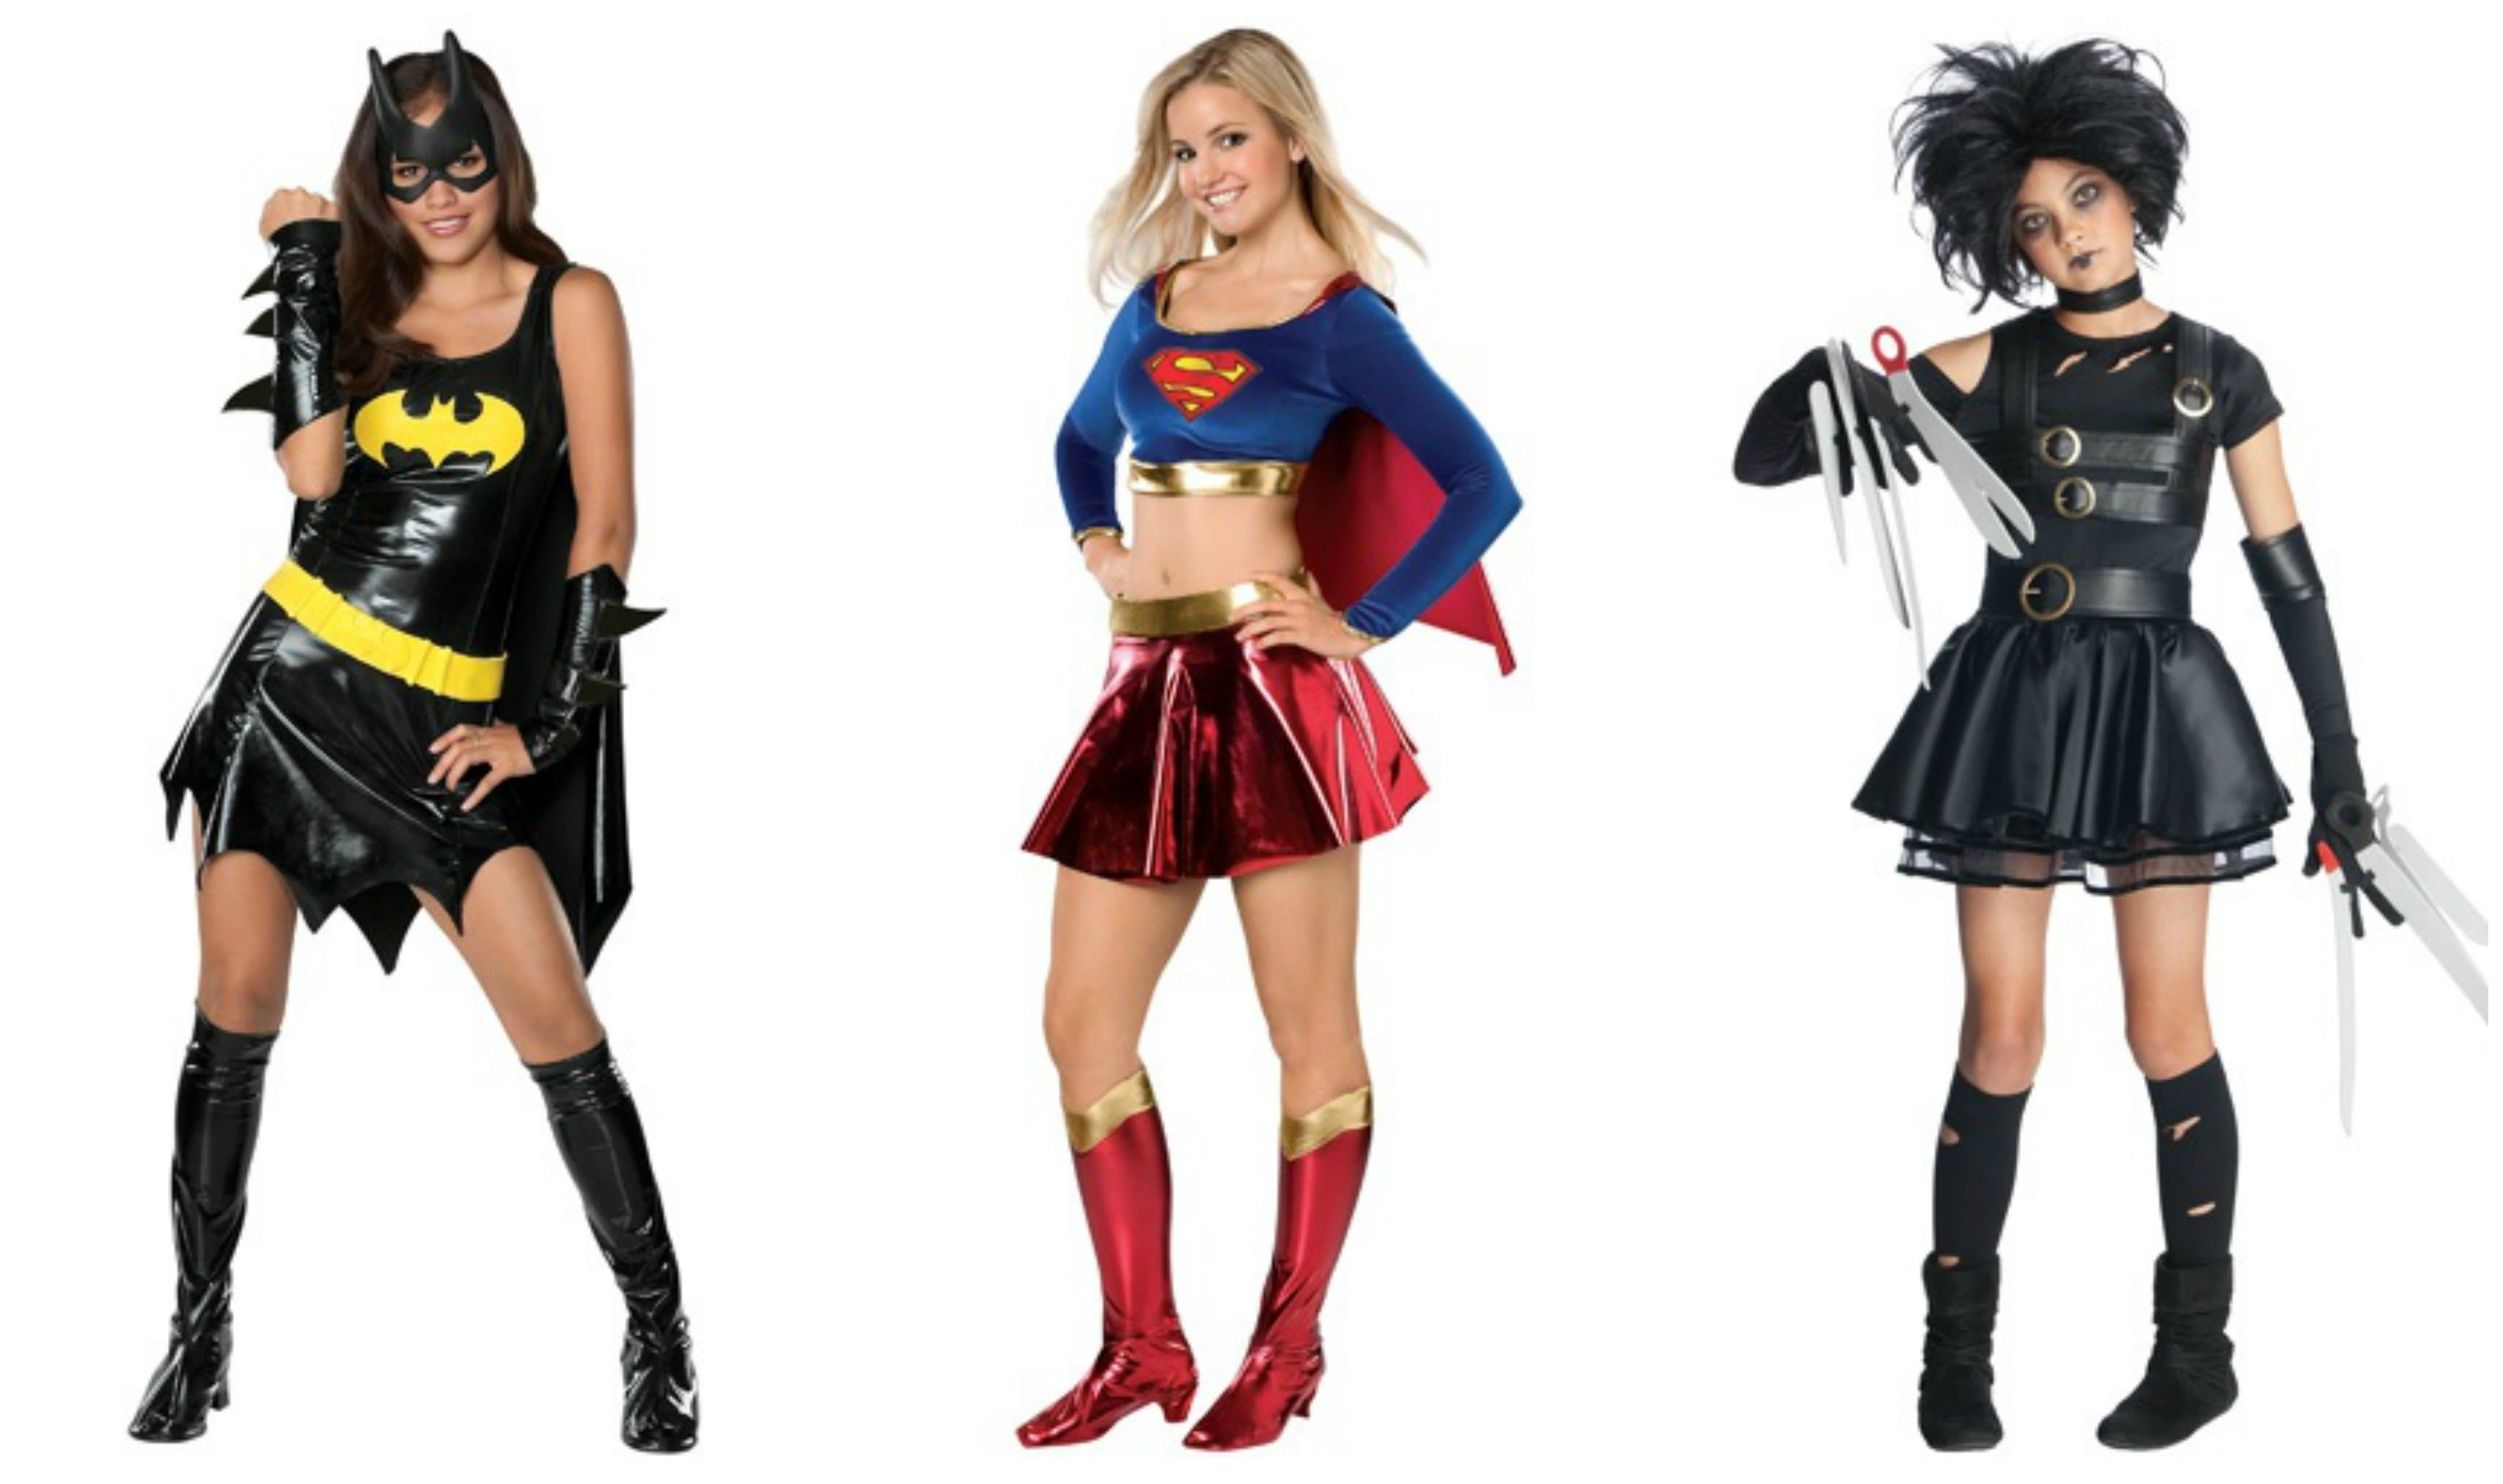 halloween costume ideas for teens girls youtube, best teenage